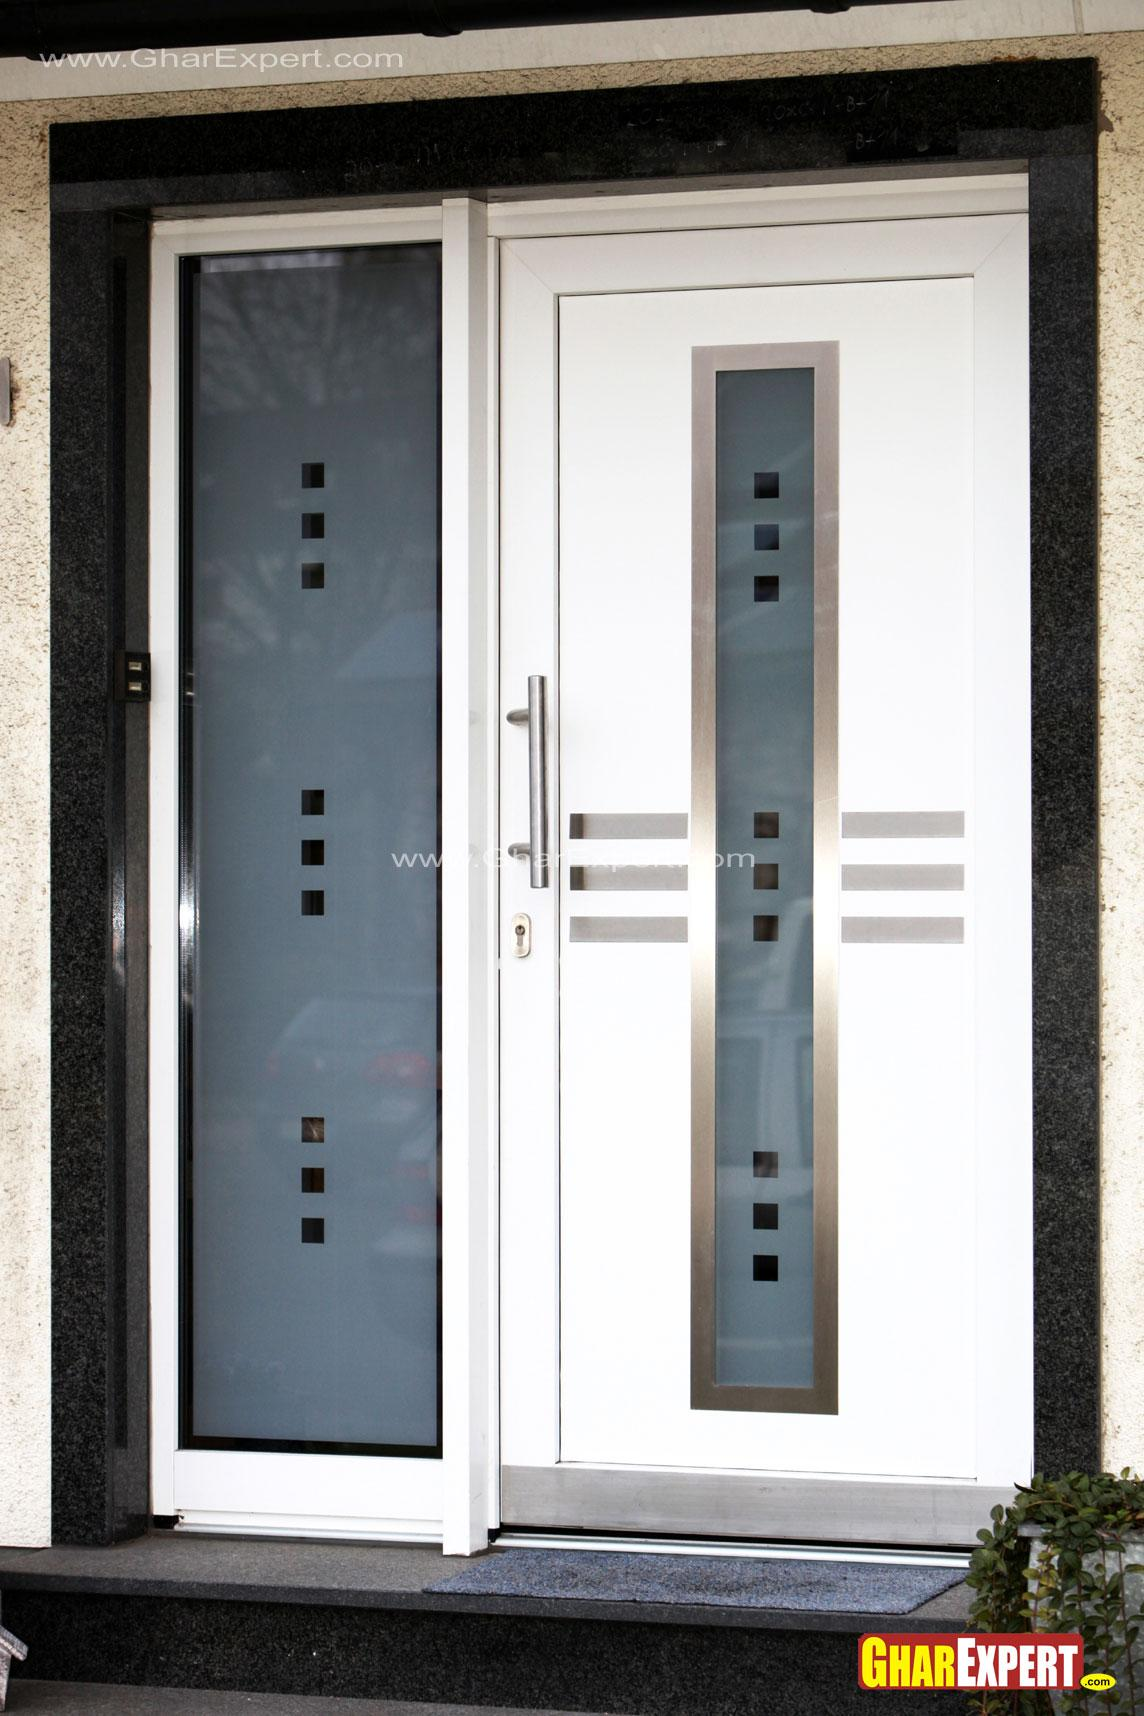 White modern entrance door design gharexpert for Front door design for flats